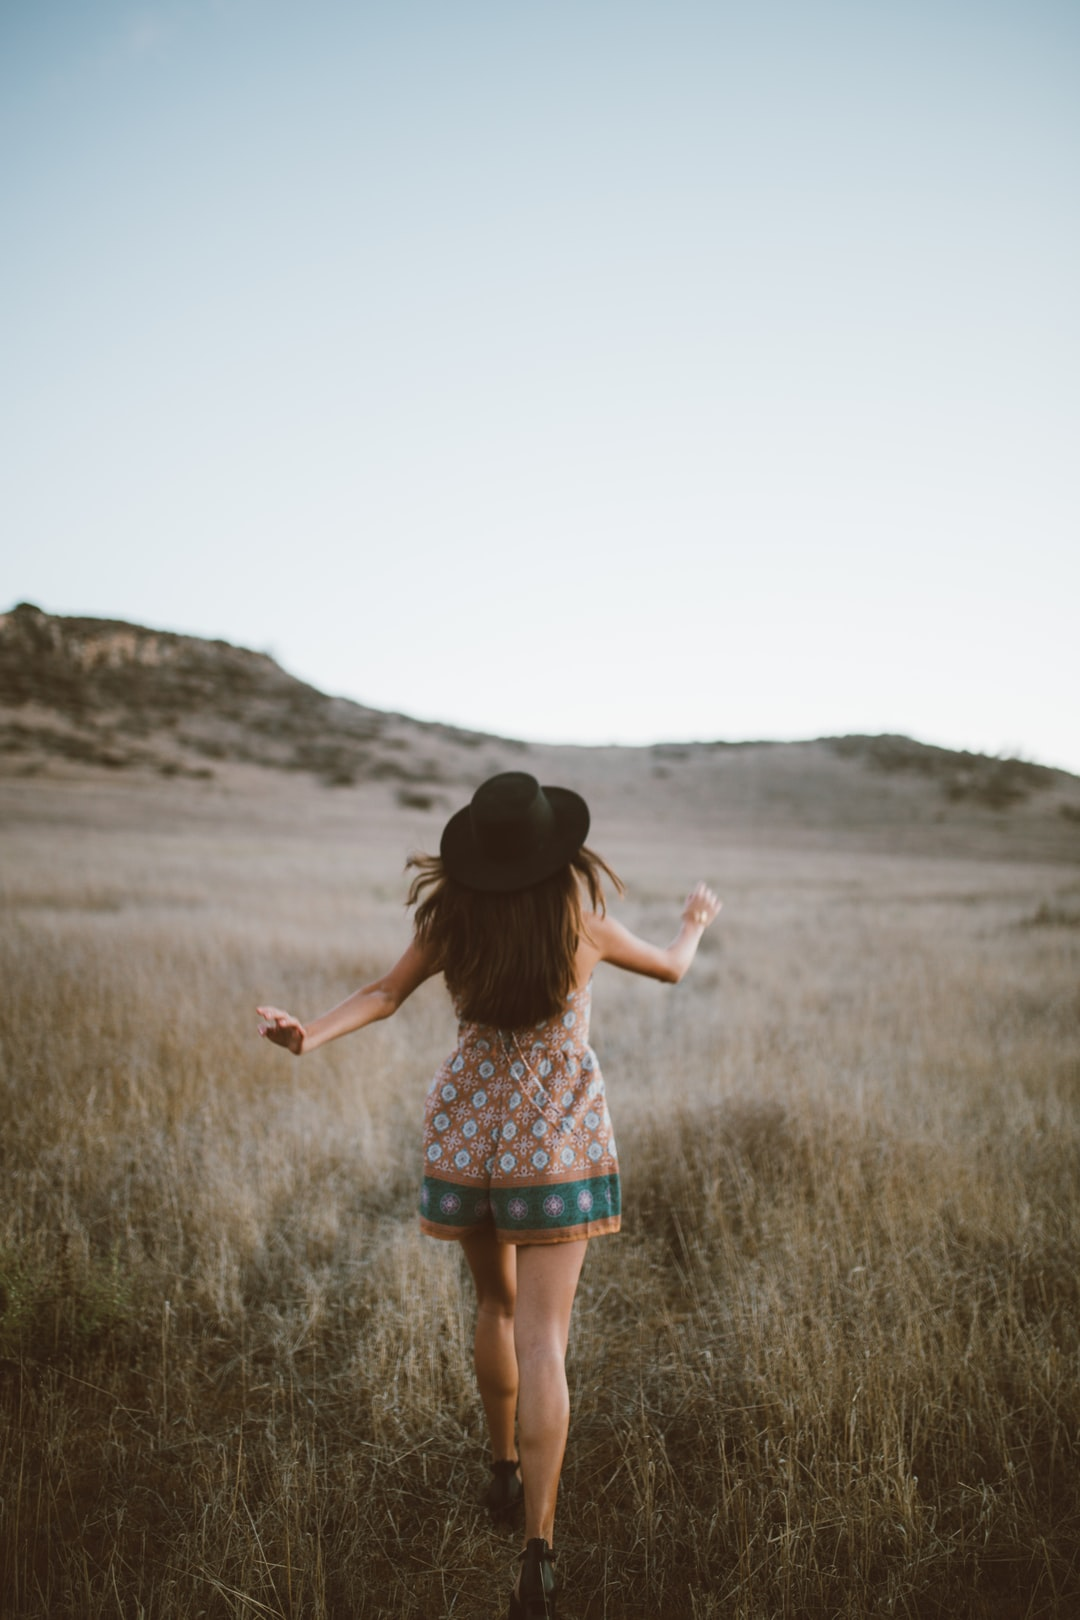 Fashion Romper Hat And Woman Hd Photo By Clarisse Meyer